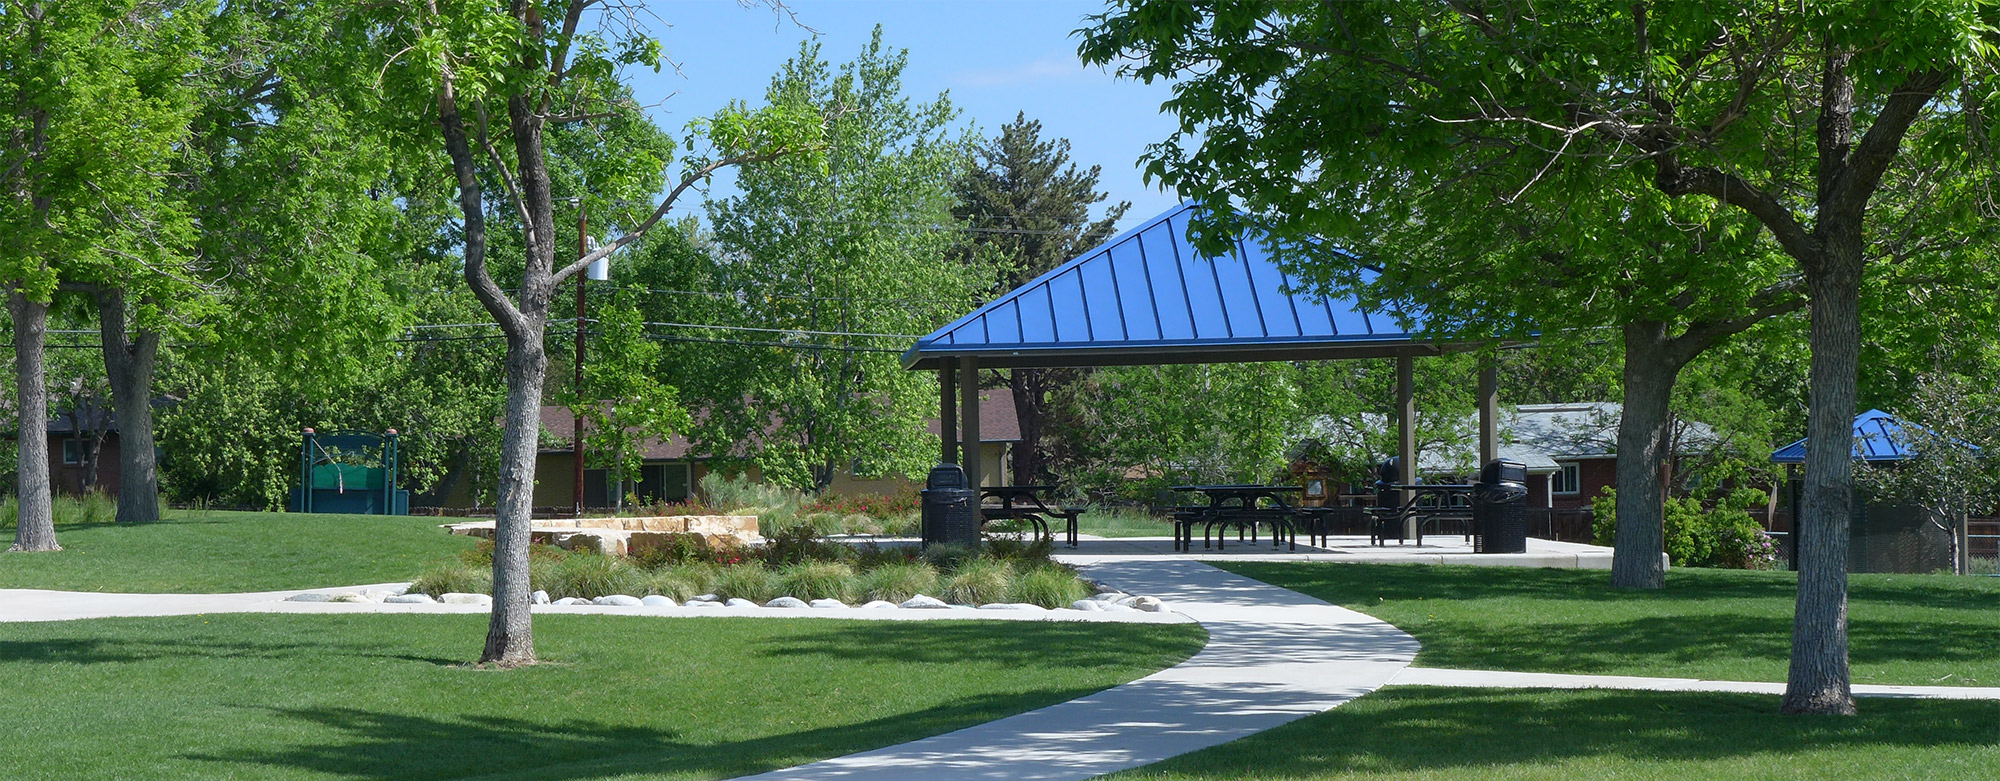 Tanglewood Park - North Area